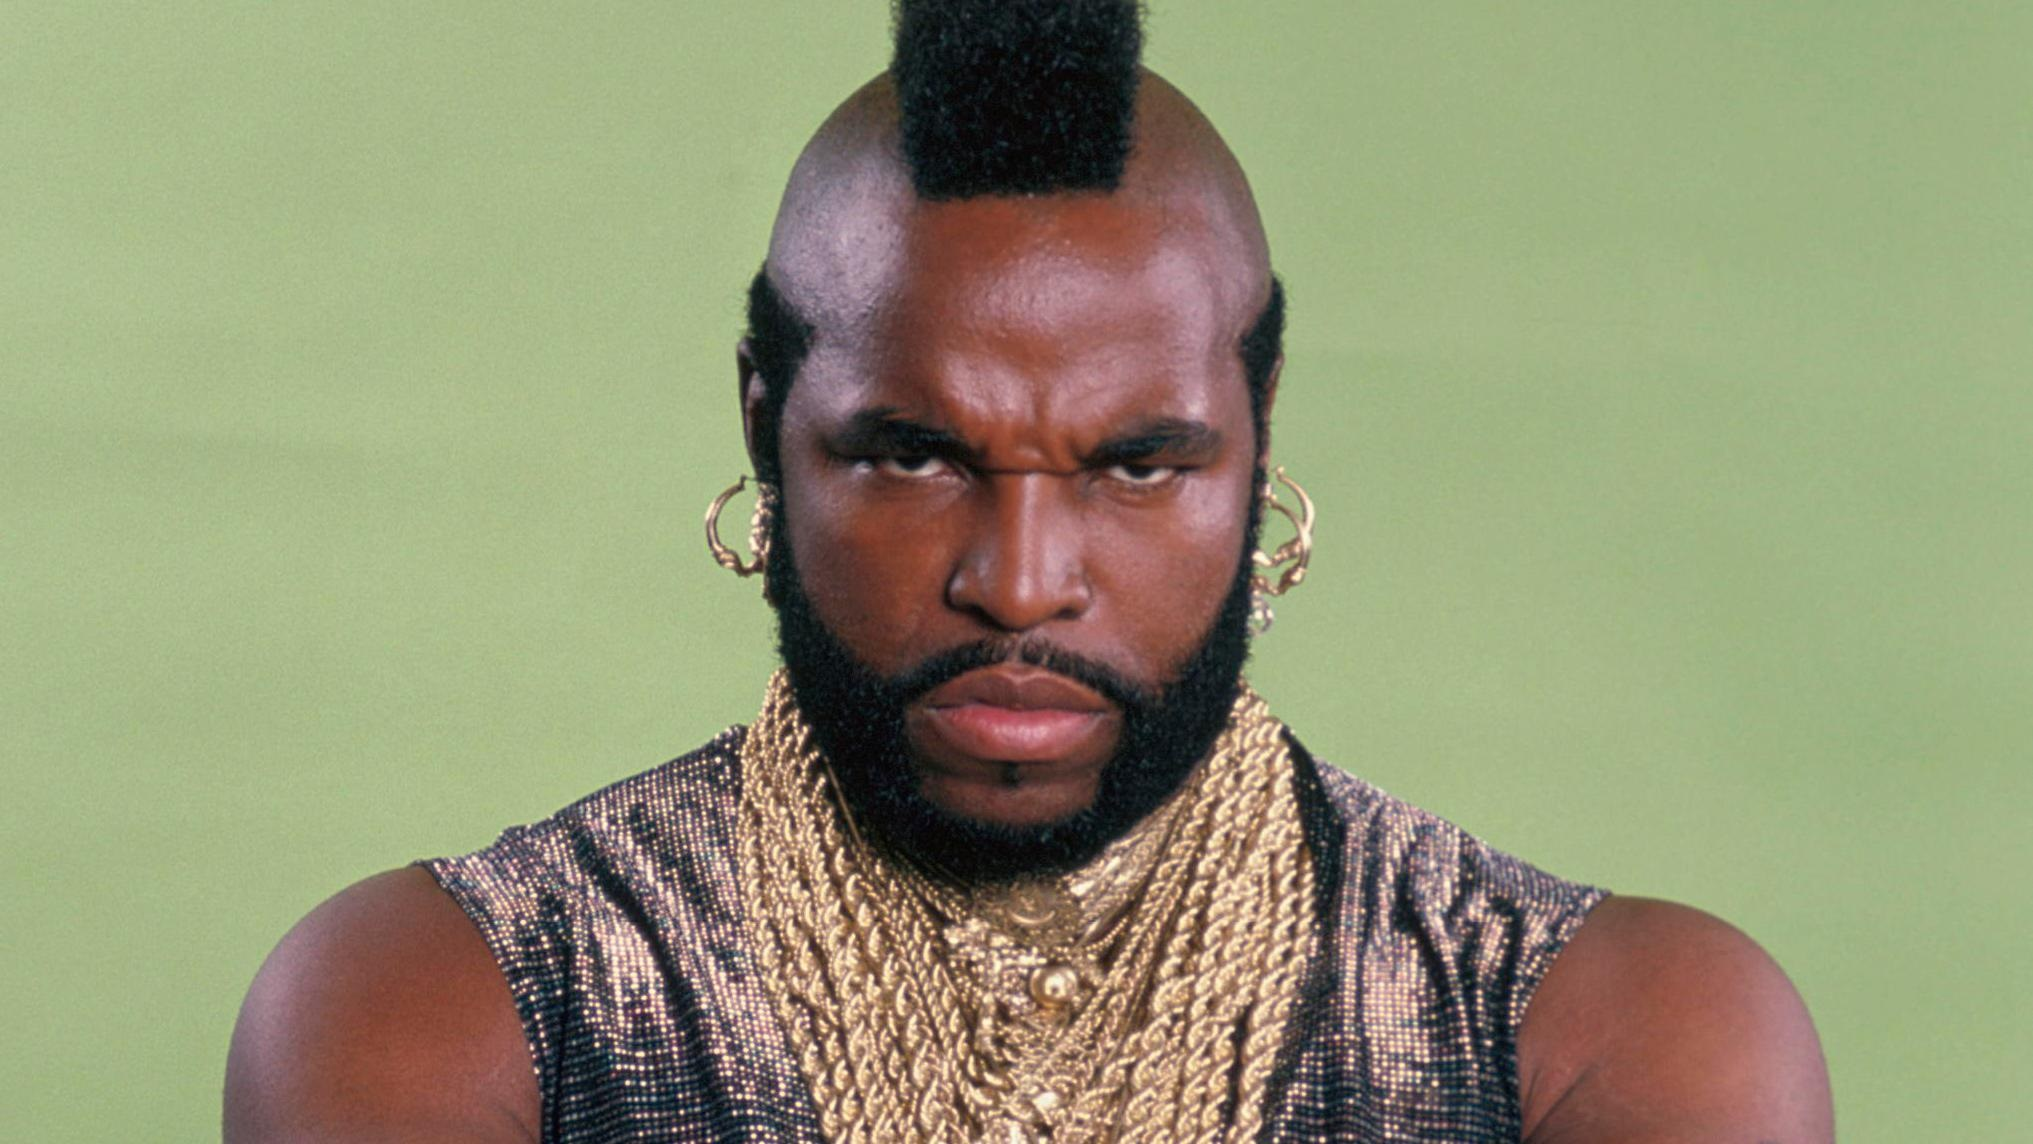 Mr. T Is All About the Paralympics